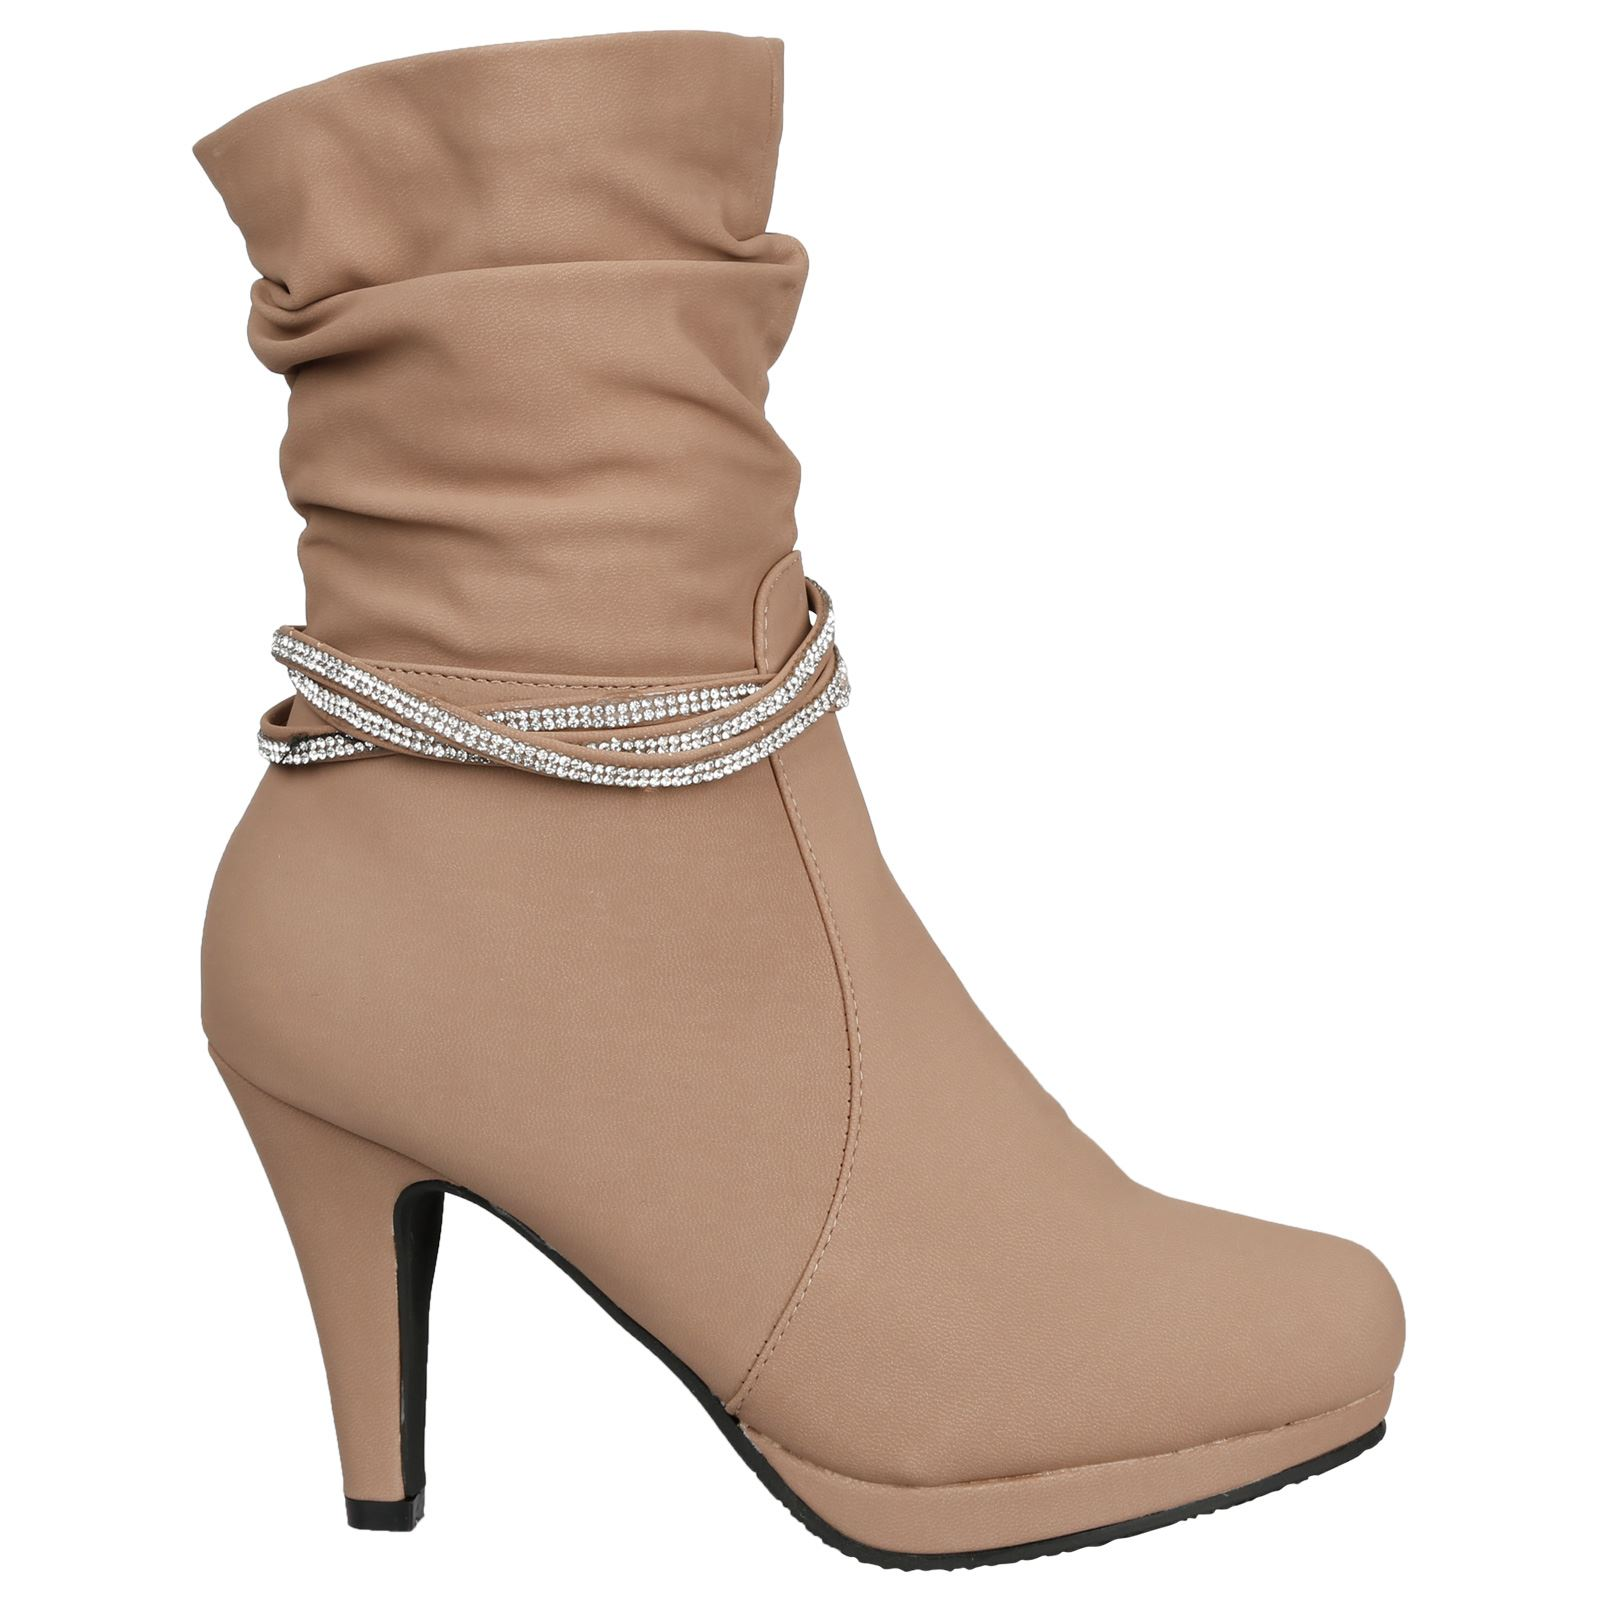 Estrella-Womens-Slim-High-Heel-Diamante-Strap-Slouch-Ankle-Boots-Casual-Style thumbnail 7